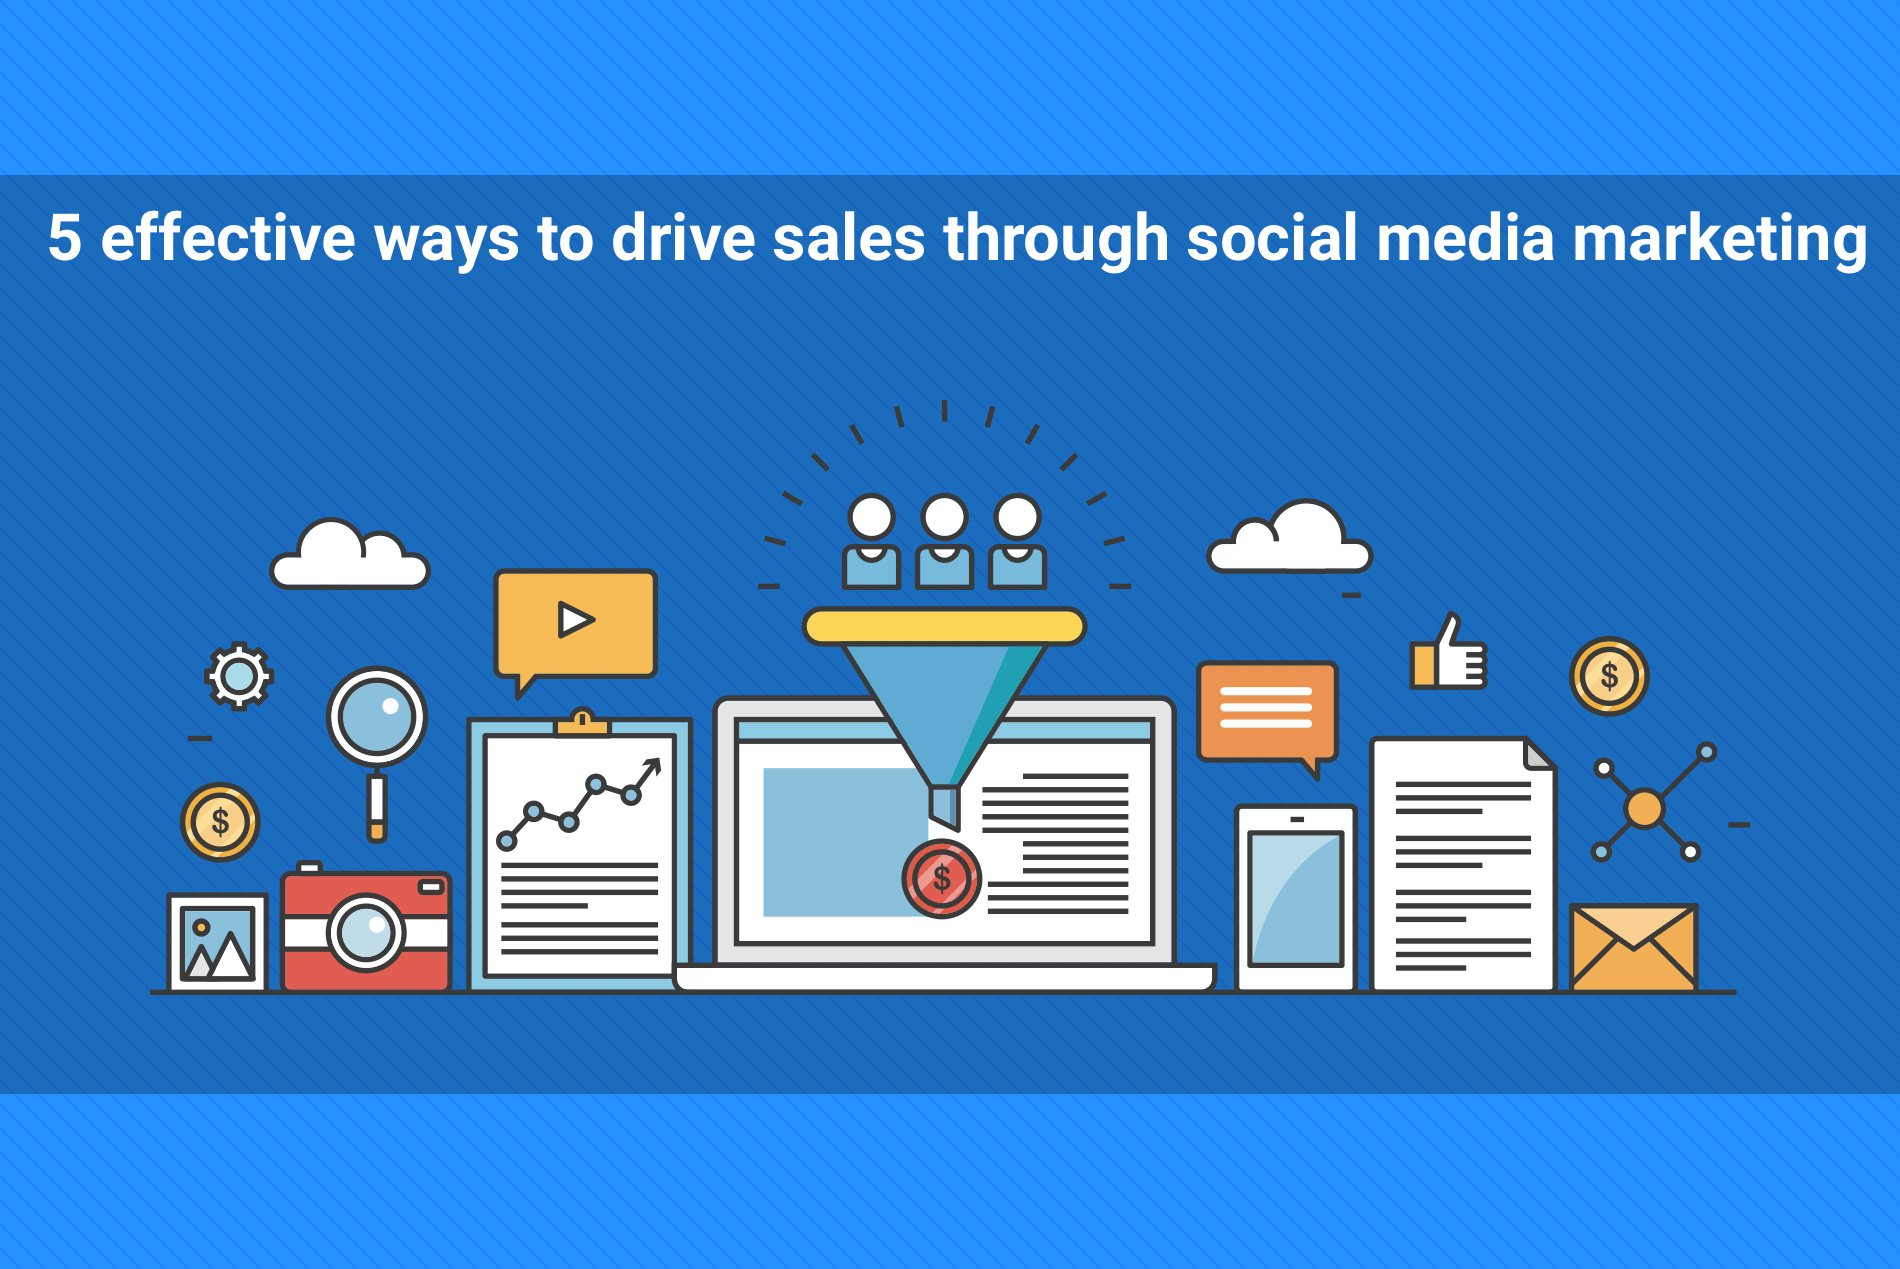 5 Effective Ways to Drive Sales Through Social Media Marketing